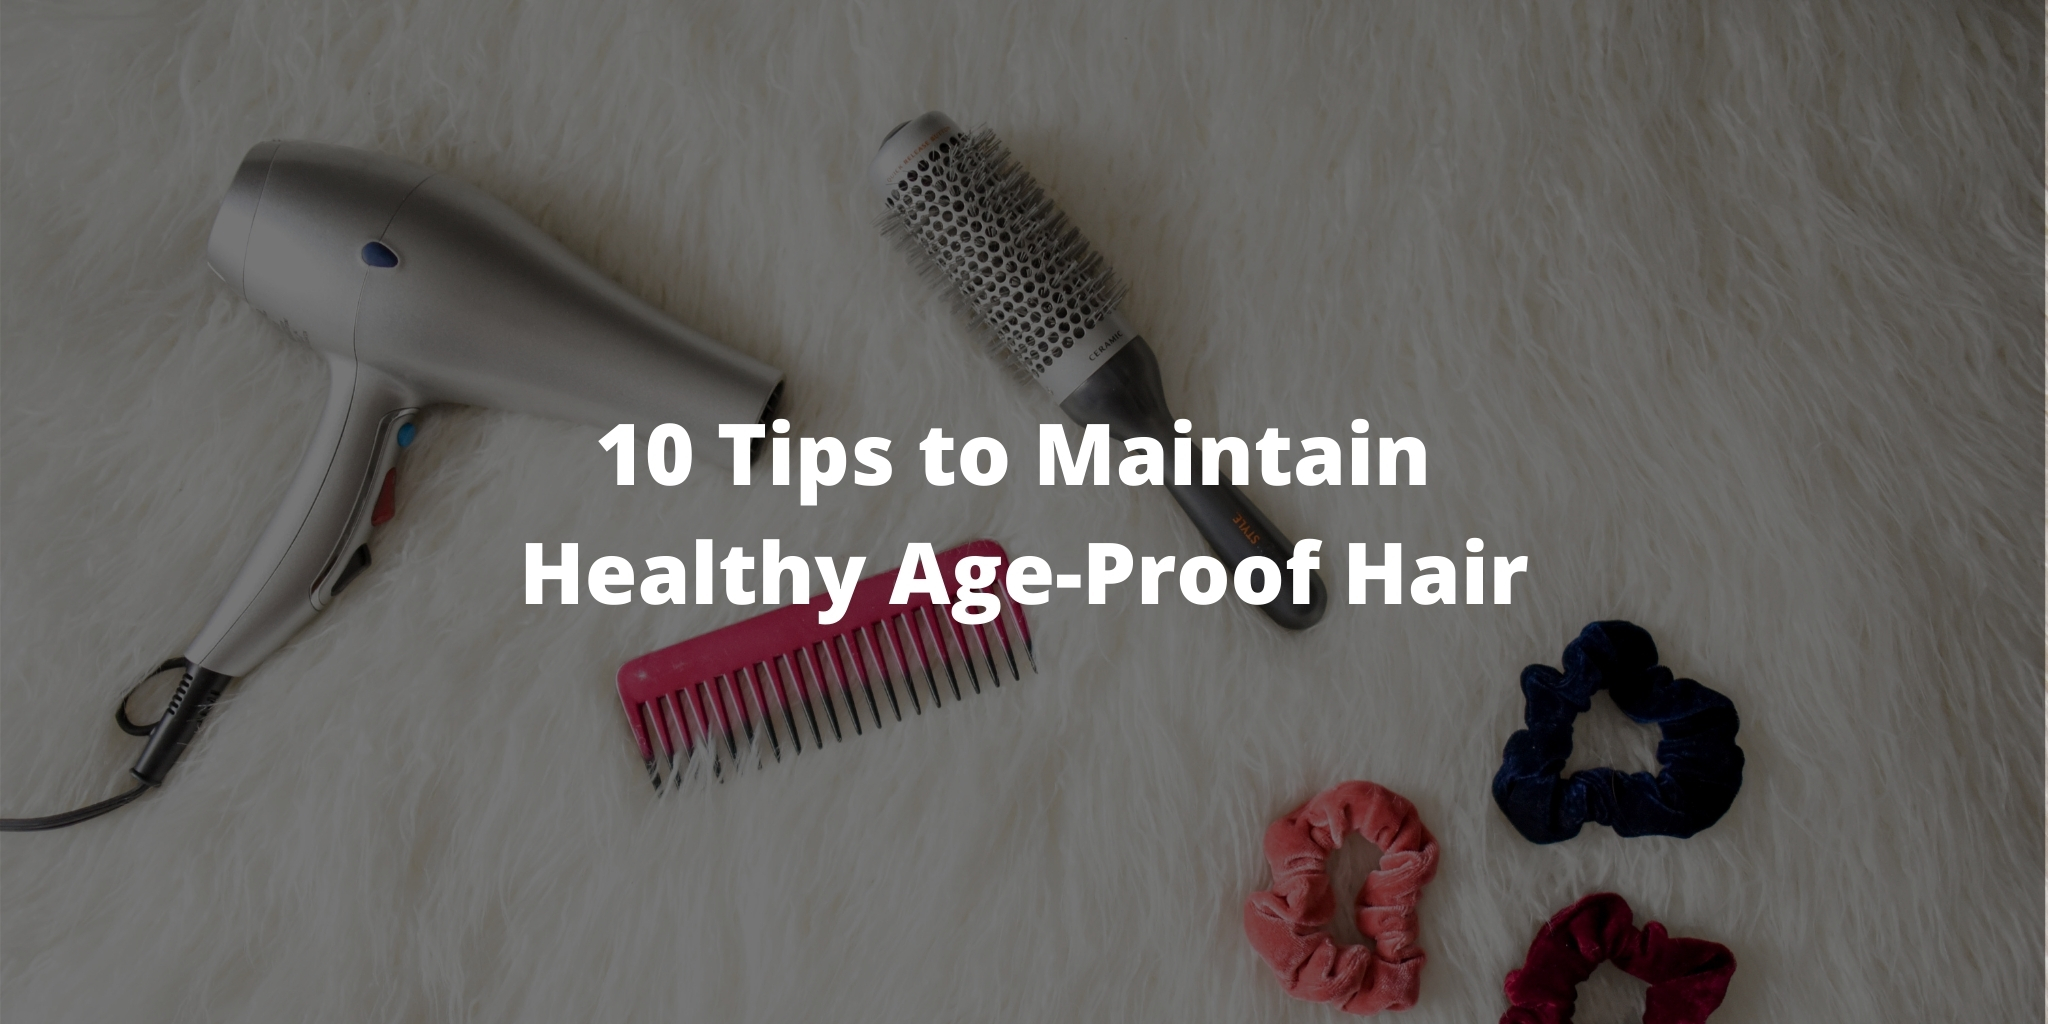 10 Tips to Maintain Healthy Age-Proof Hair